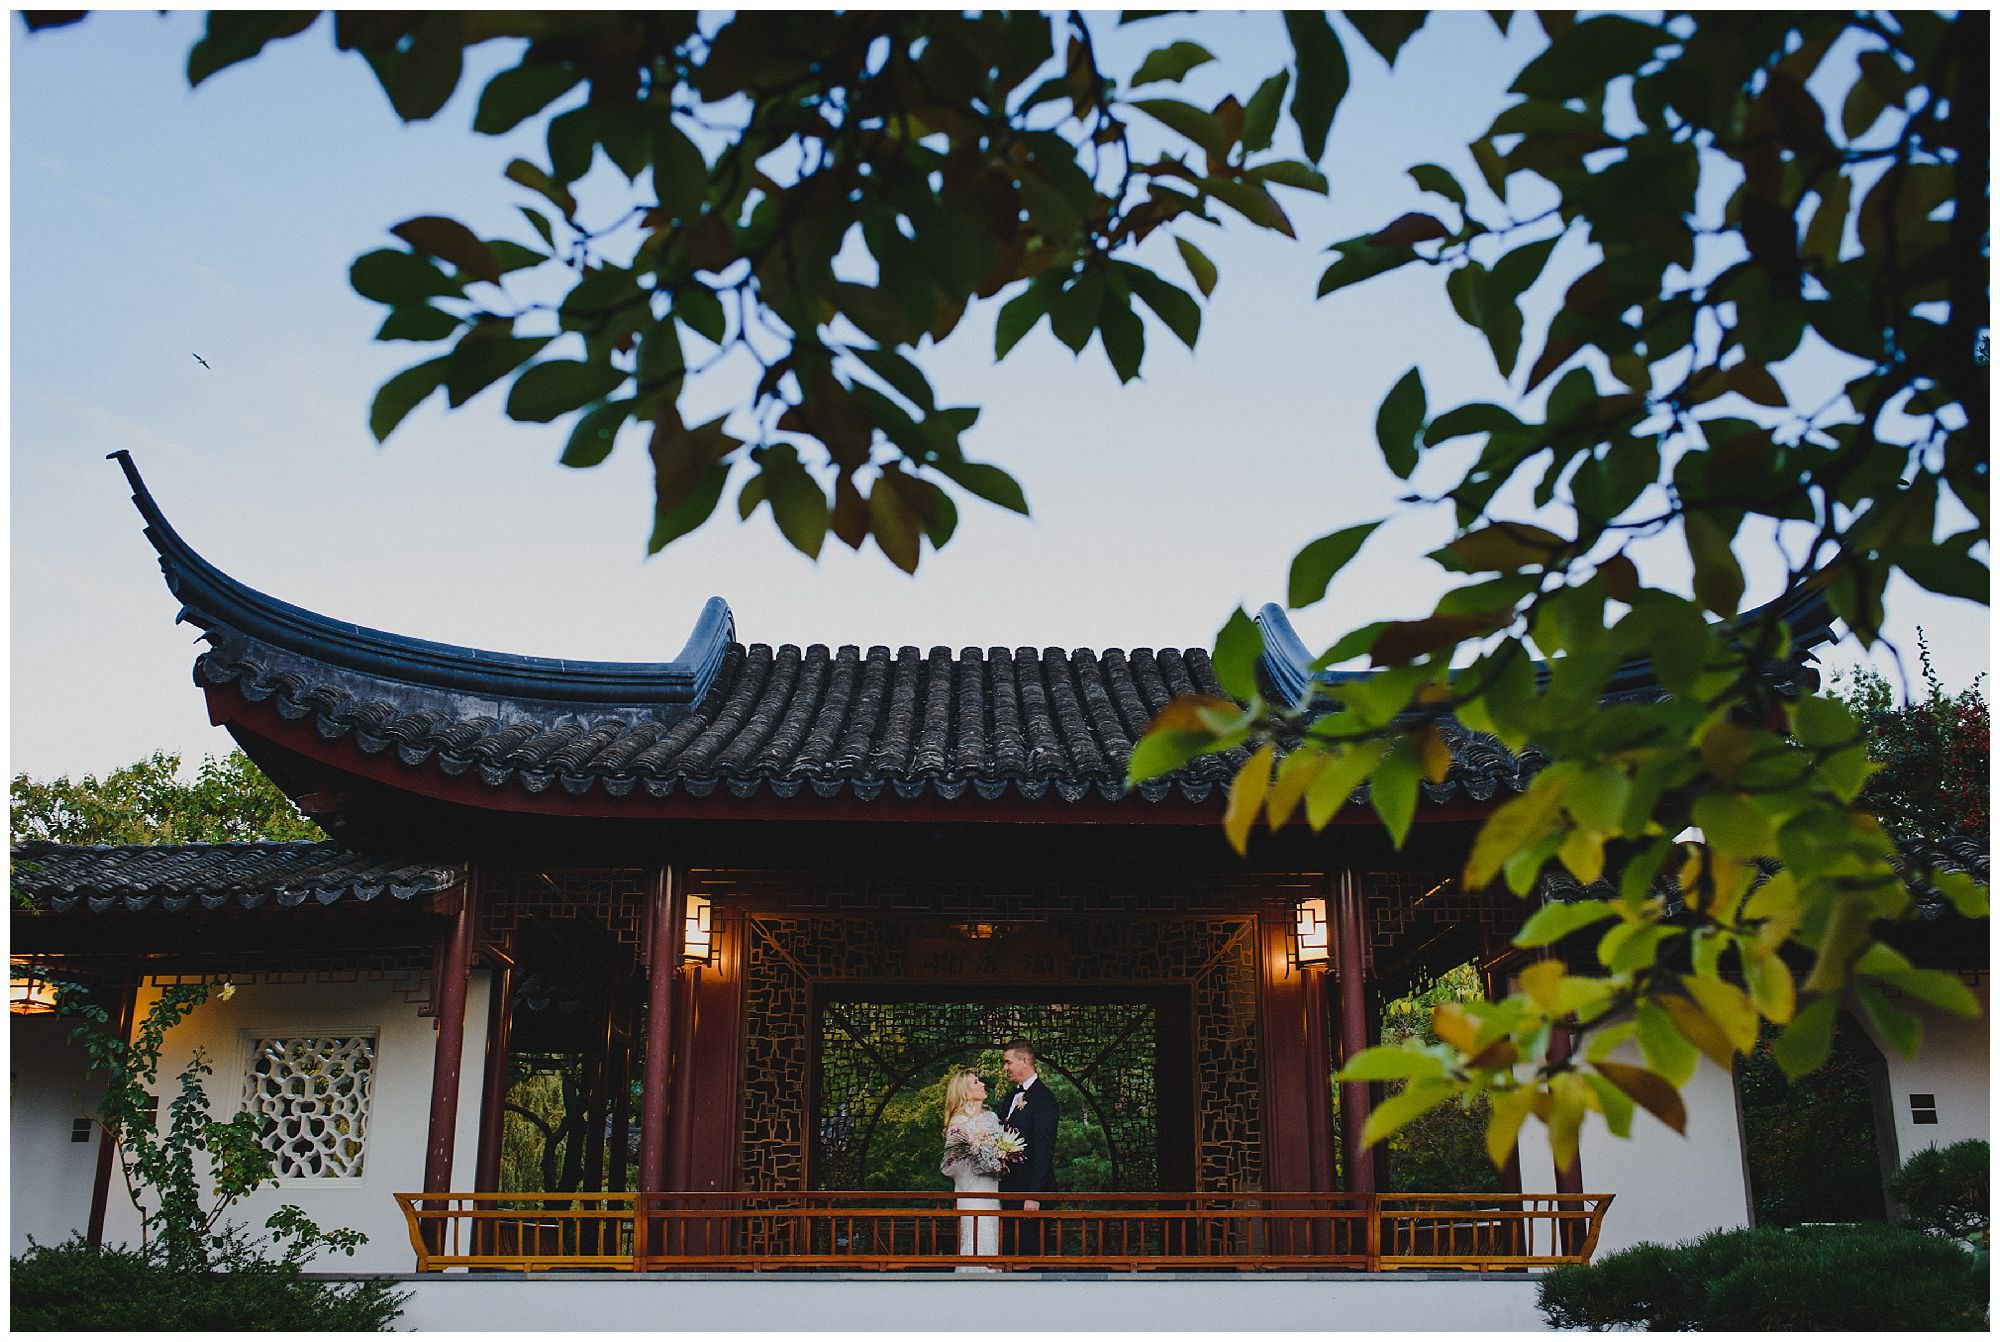 Bride and Groom at sunset after their wedding ceremony at Dr. Sun Yat-Sen Classical Chinese Gardens, elopement, intimate wedding, mature bride and groom